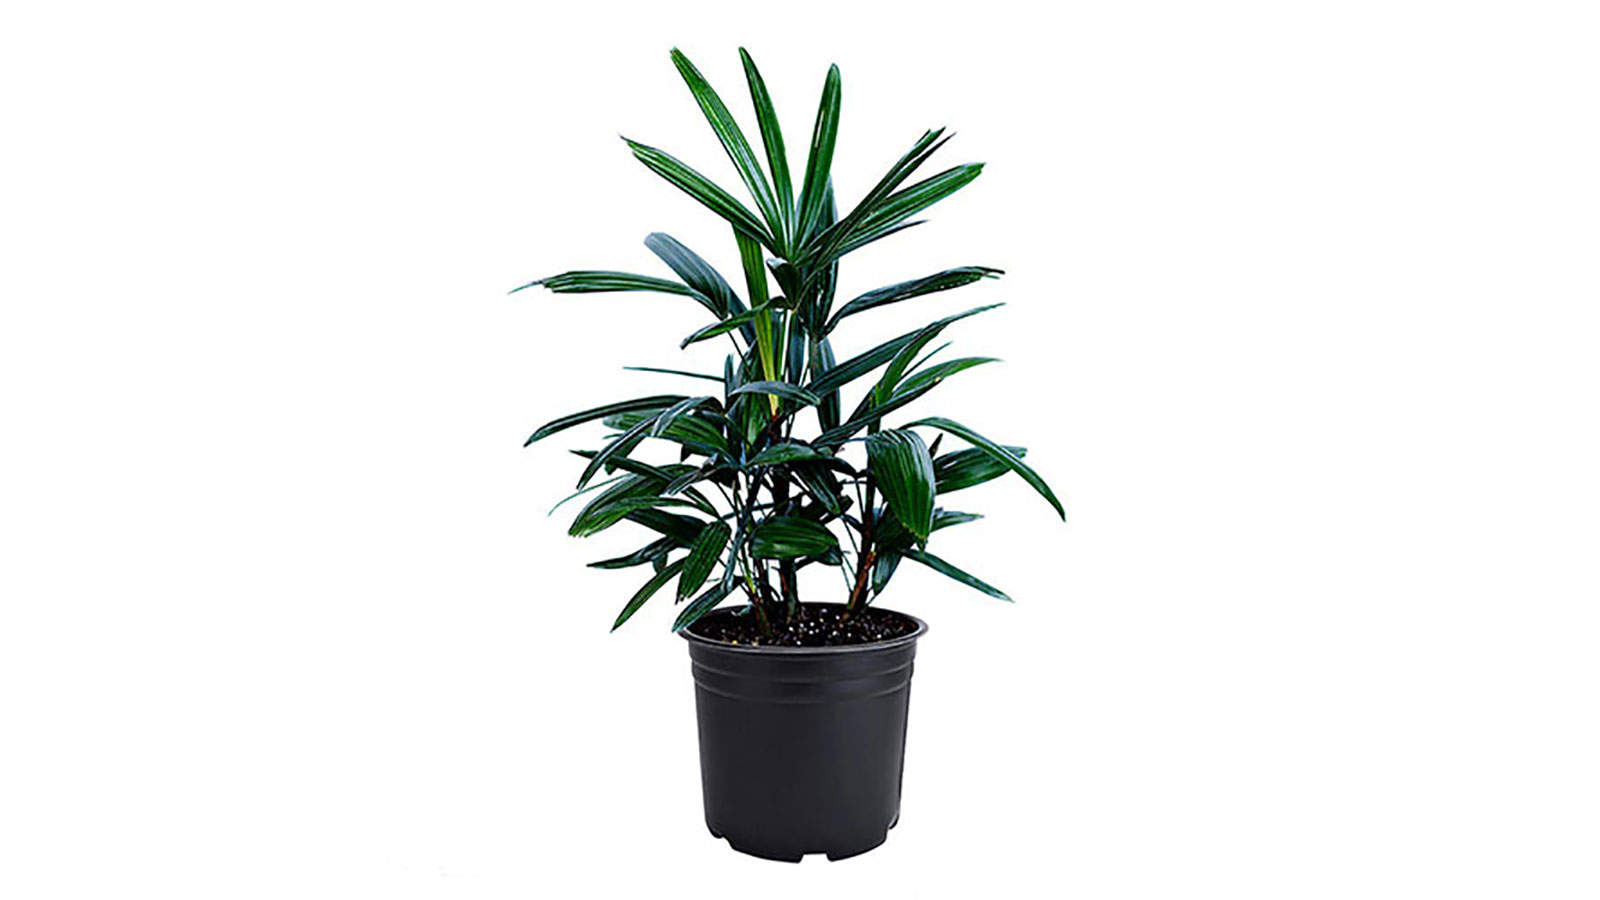 Lady Palm Rhapis Excelsa Indoor/Outdoor Air Purifier Live Plant